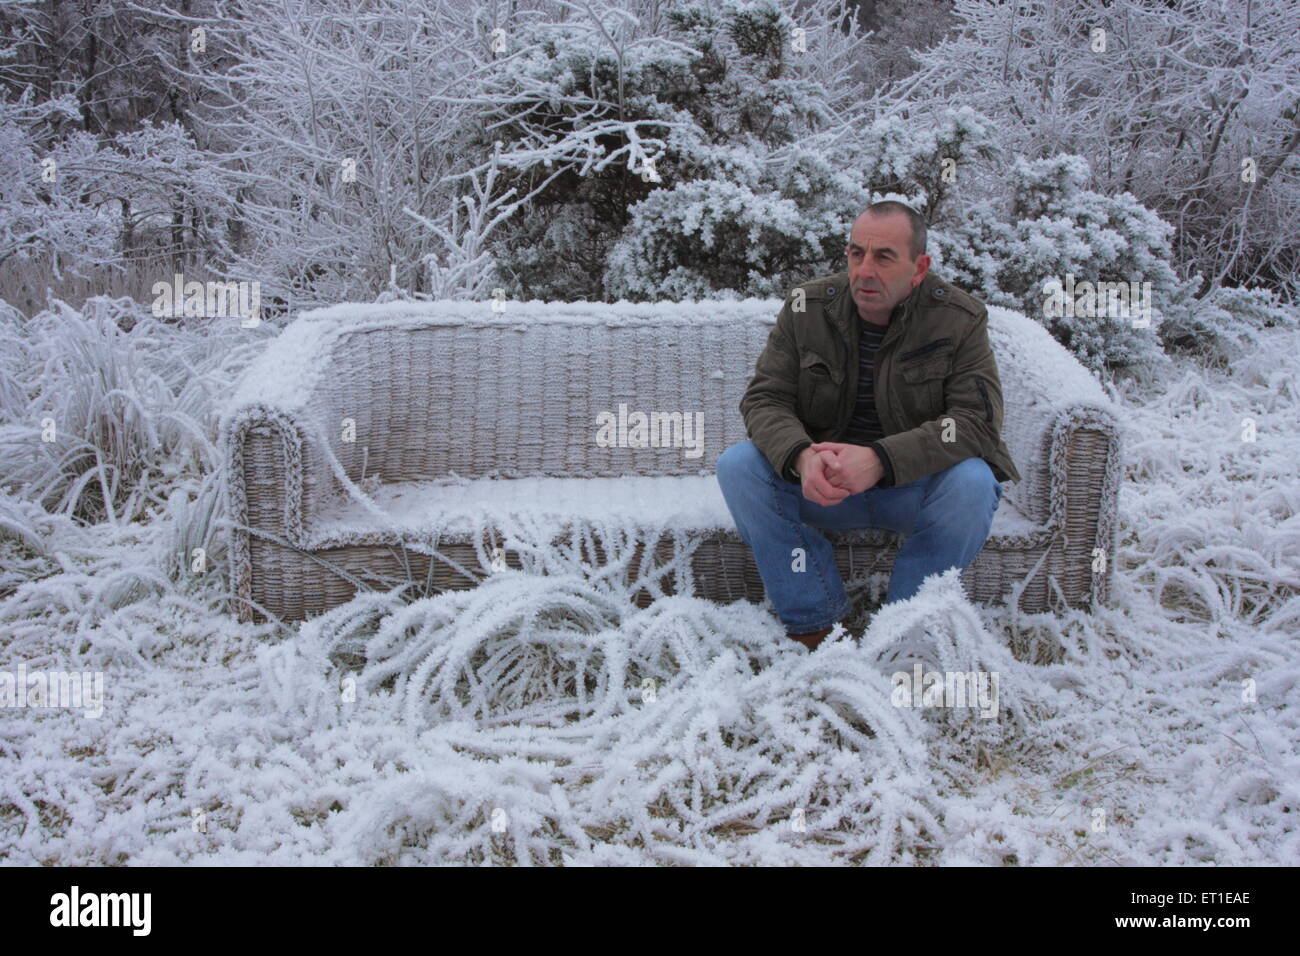 Man seated on abandoned, dumped frost covered settee in winter. - Stock Image